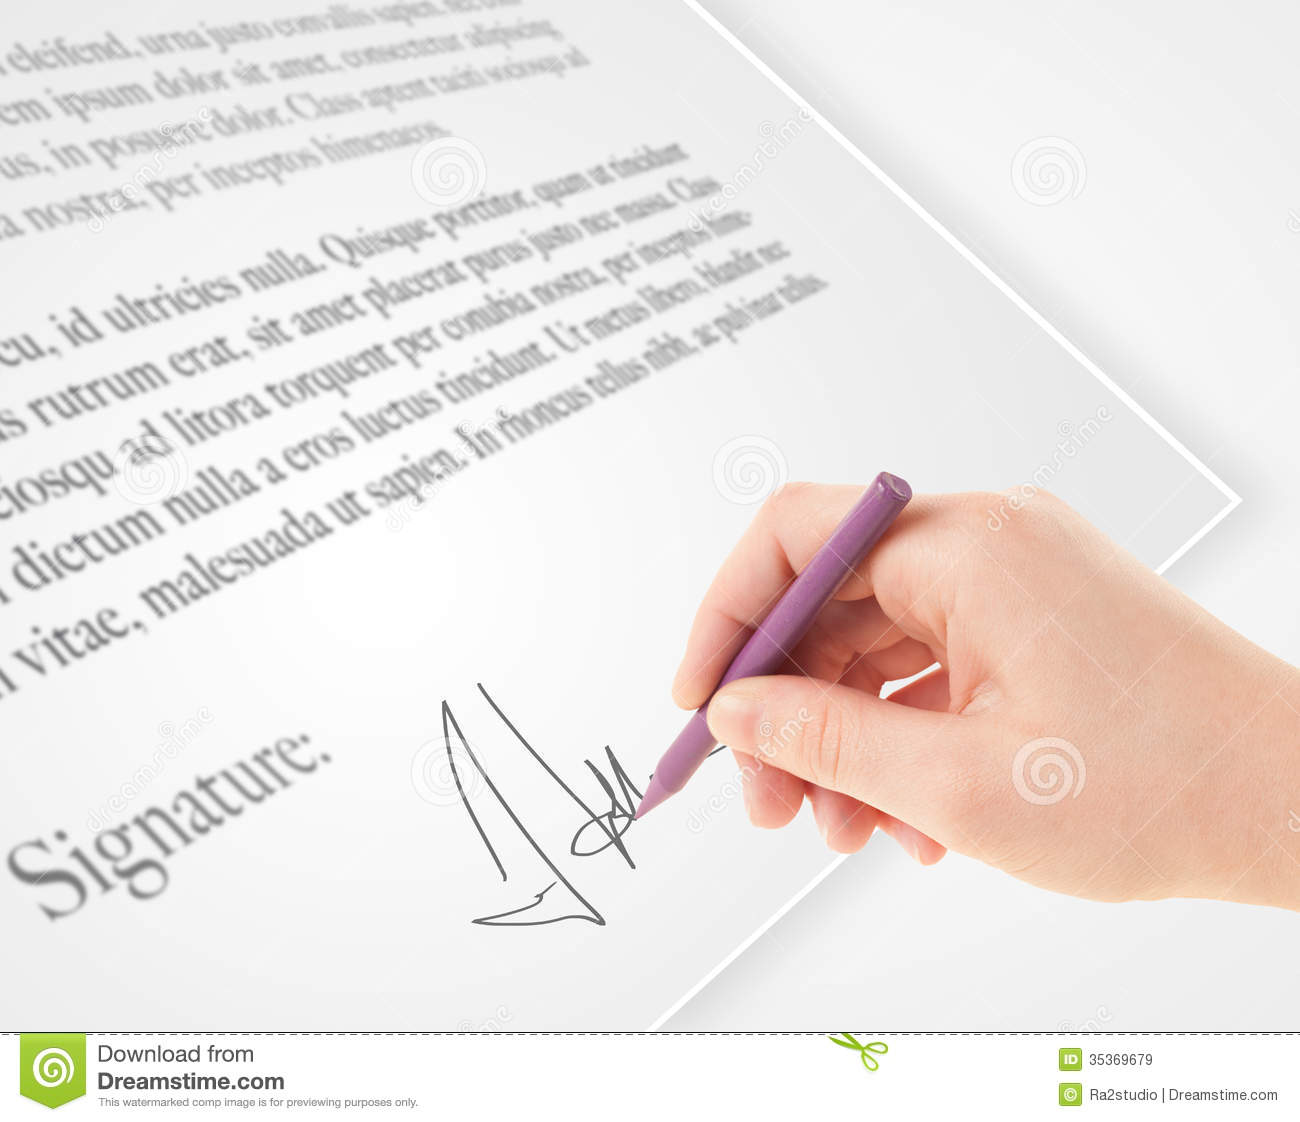 writing vs on legal document